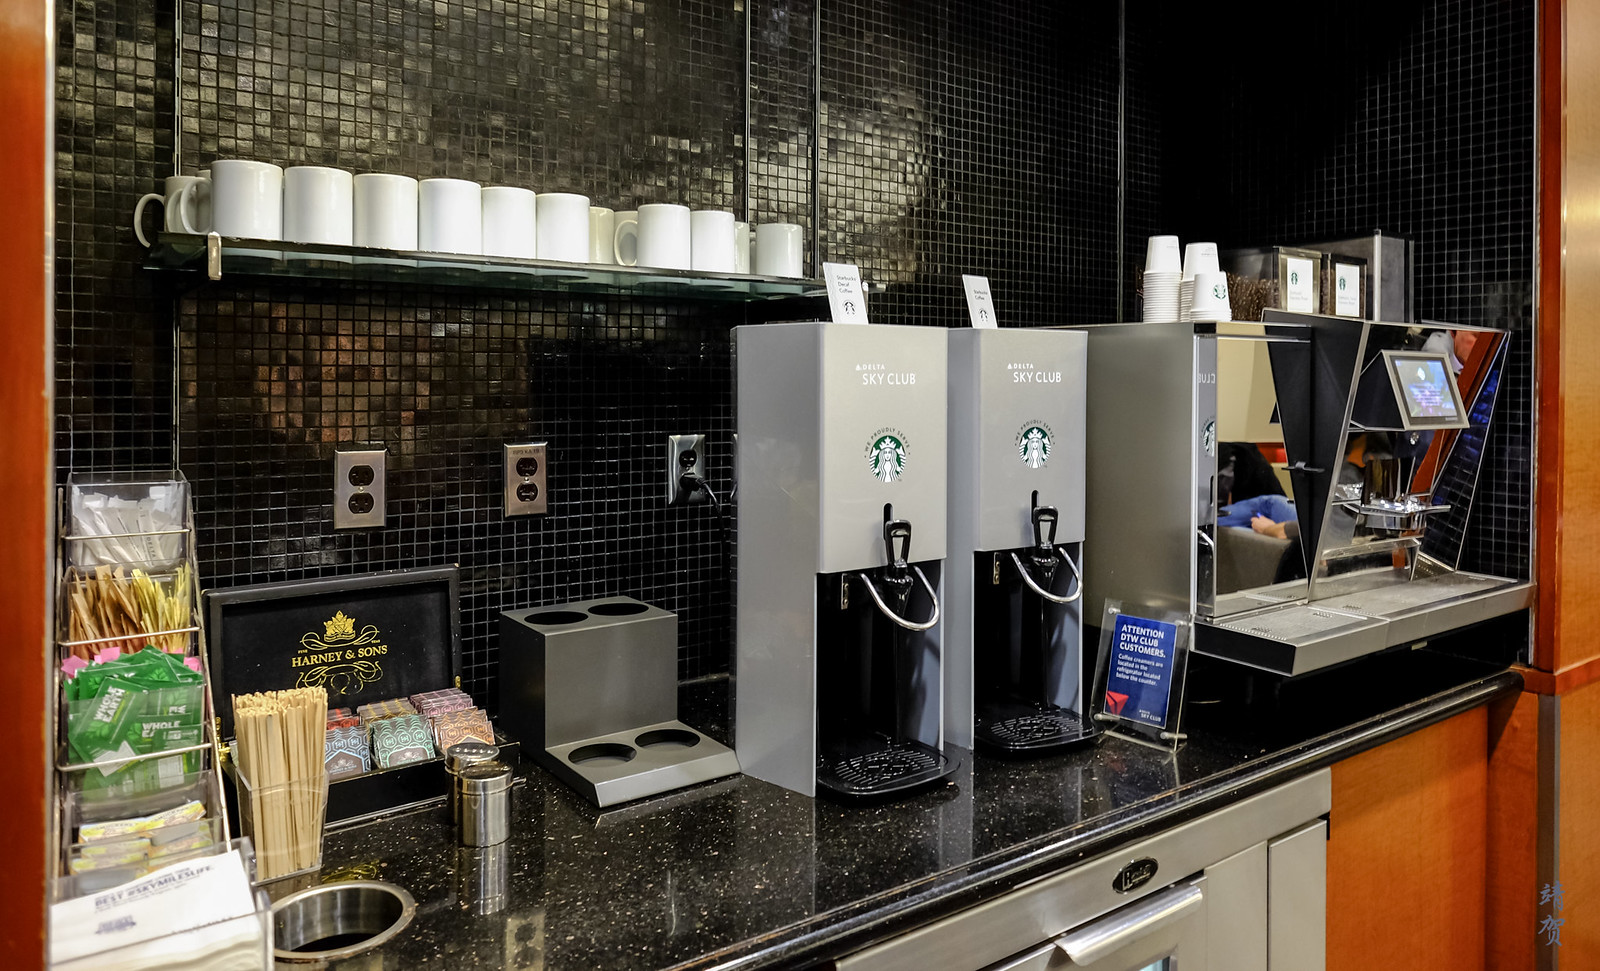 Coffee machine and dispenser